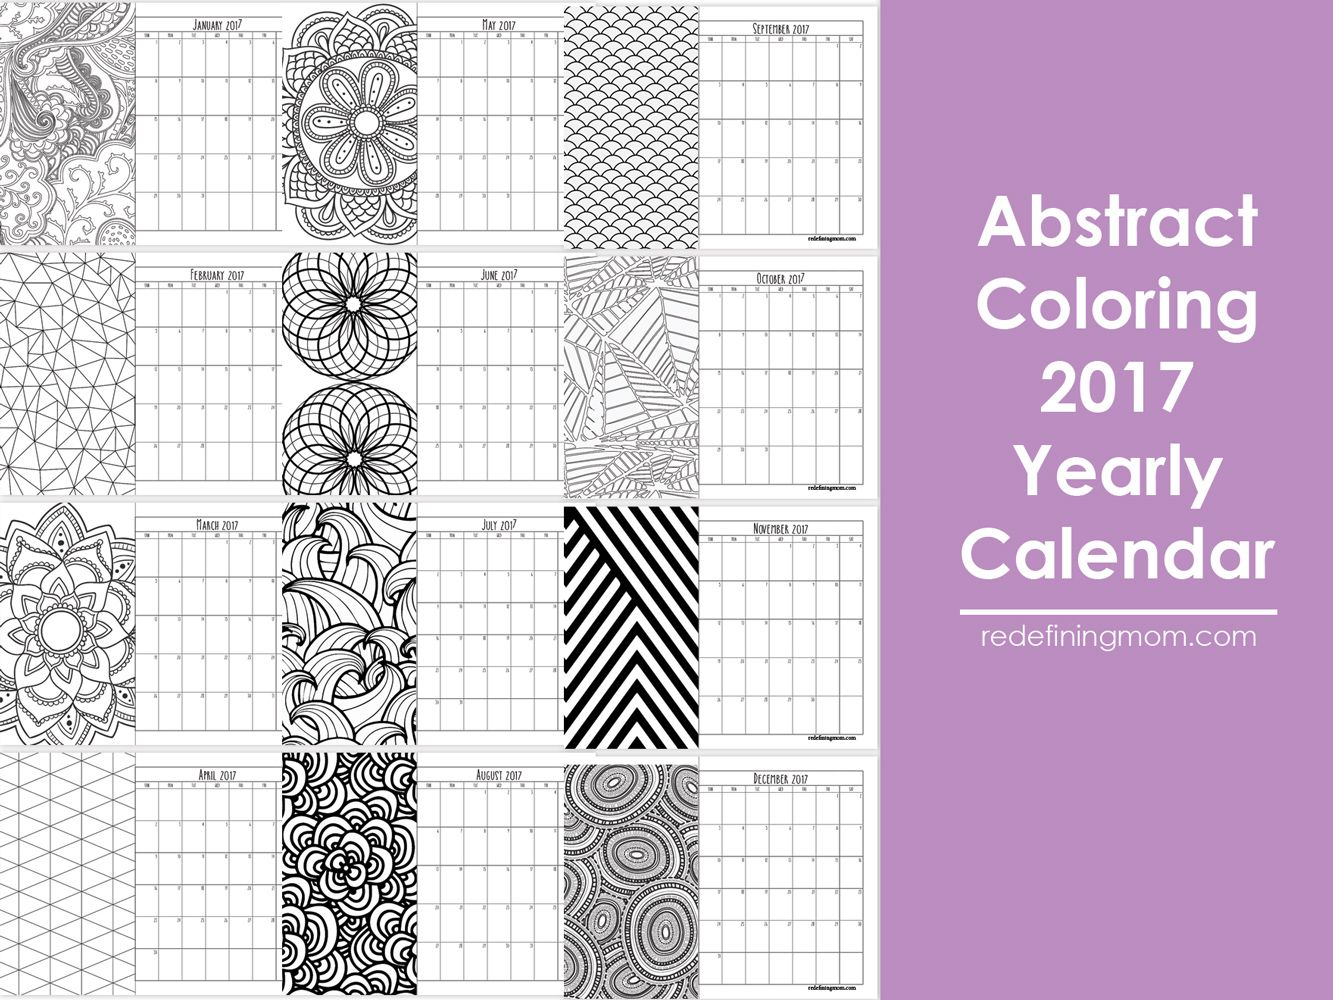 Abstract Adult Coloring 2017 Calendar Free Printable - Redefining Mom